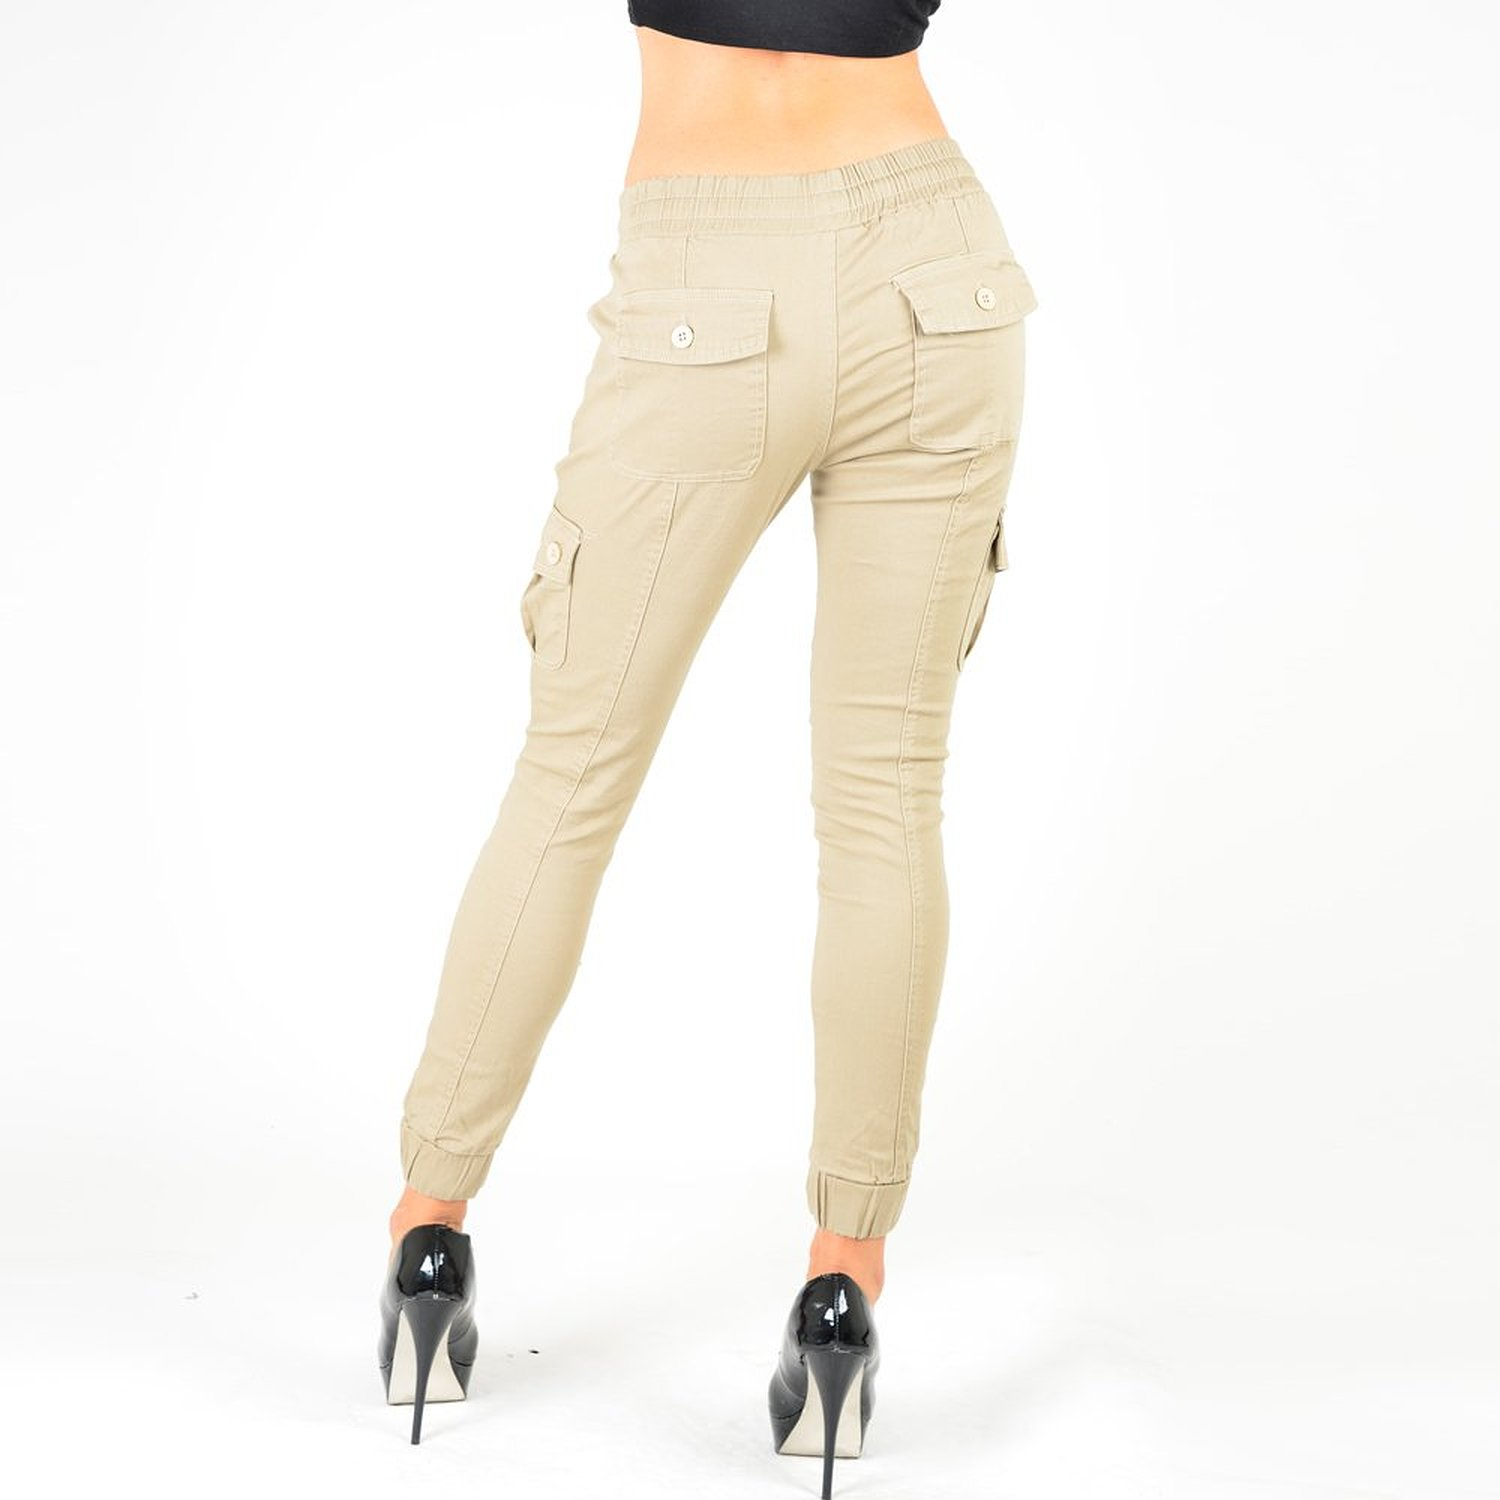 Womens jogger cargo pants